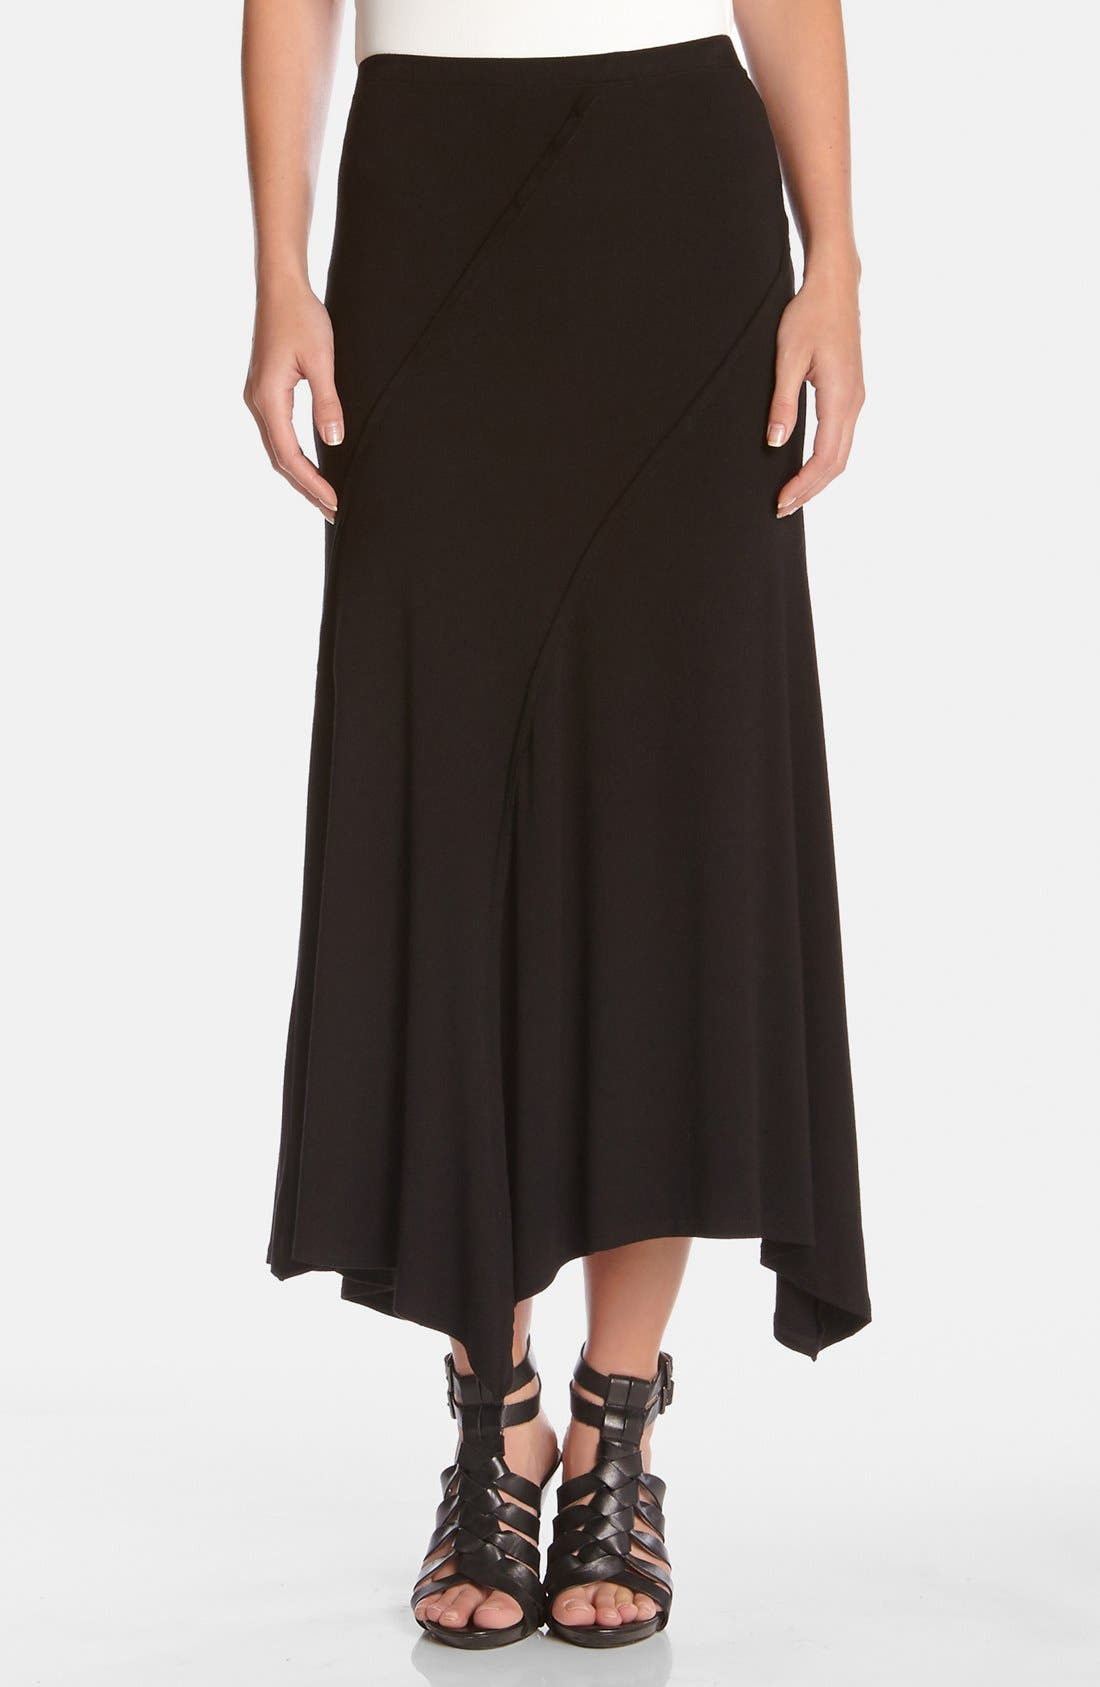 Alternate Image 1 Selected - Karen Kane Spiral Seam Stretch Knit Maxi Skirt